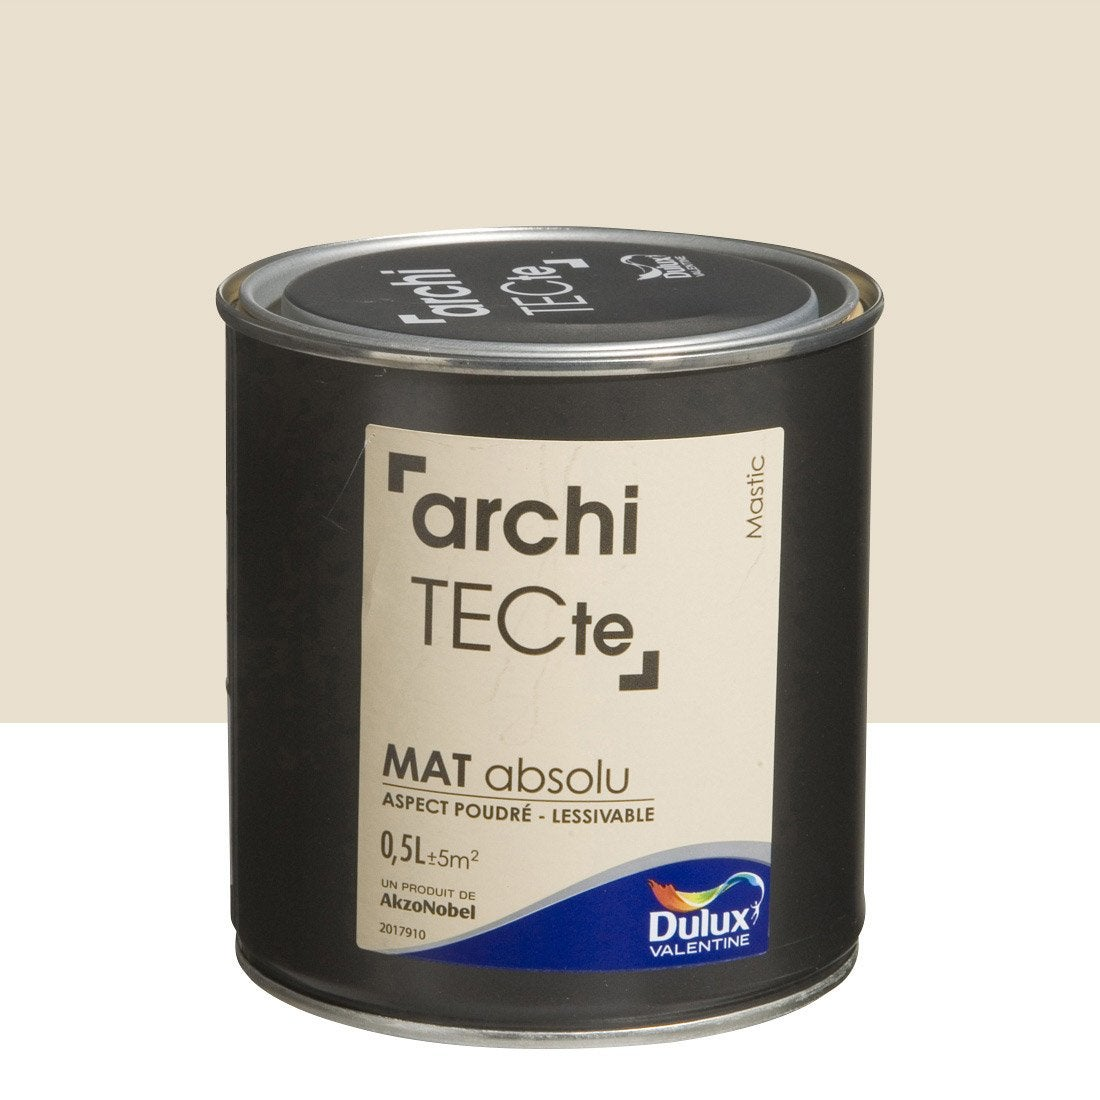 peinture beige mastic dulux valentine architecte 0 5 l leroy merlin. Black Bedroom Furniture Sets. Home Design Ideas